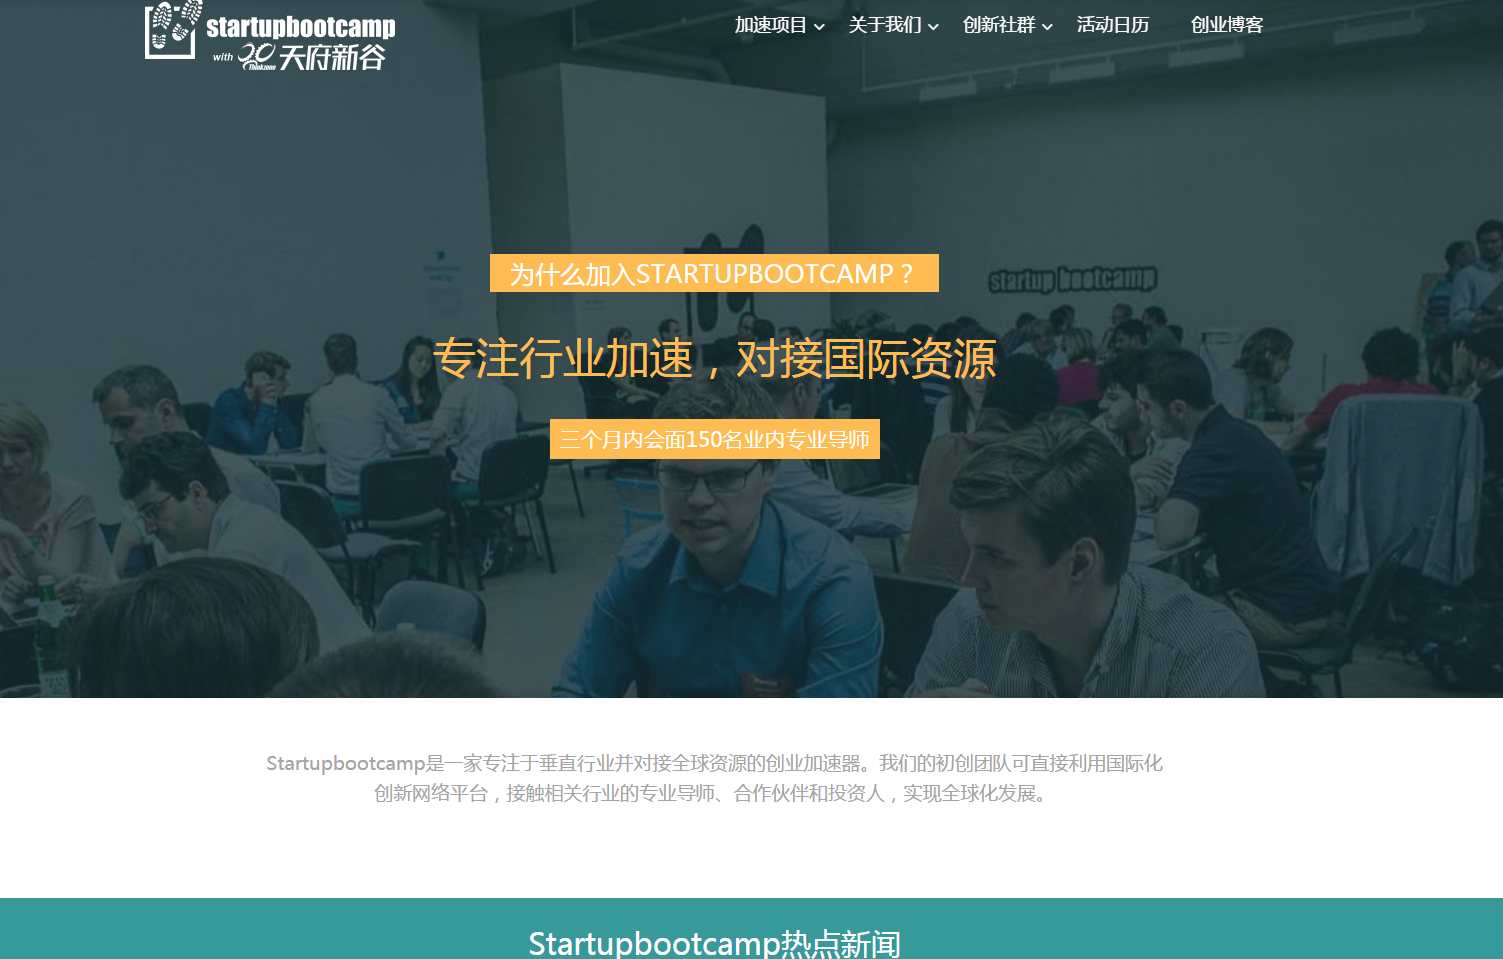 Startupbootcamp China Website